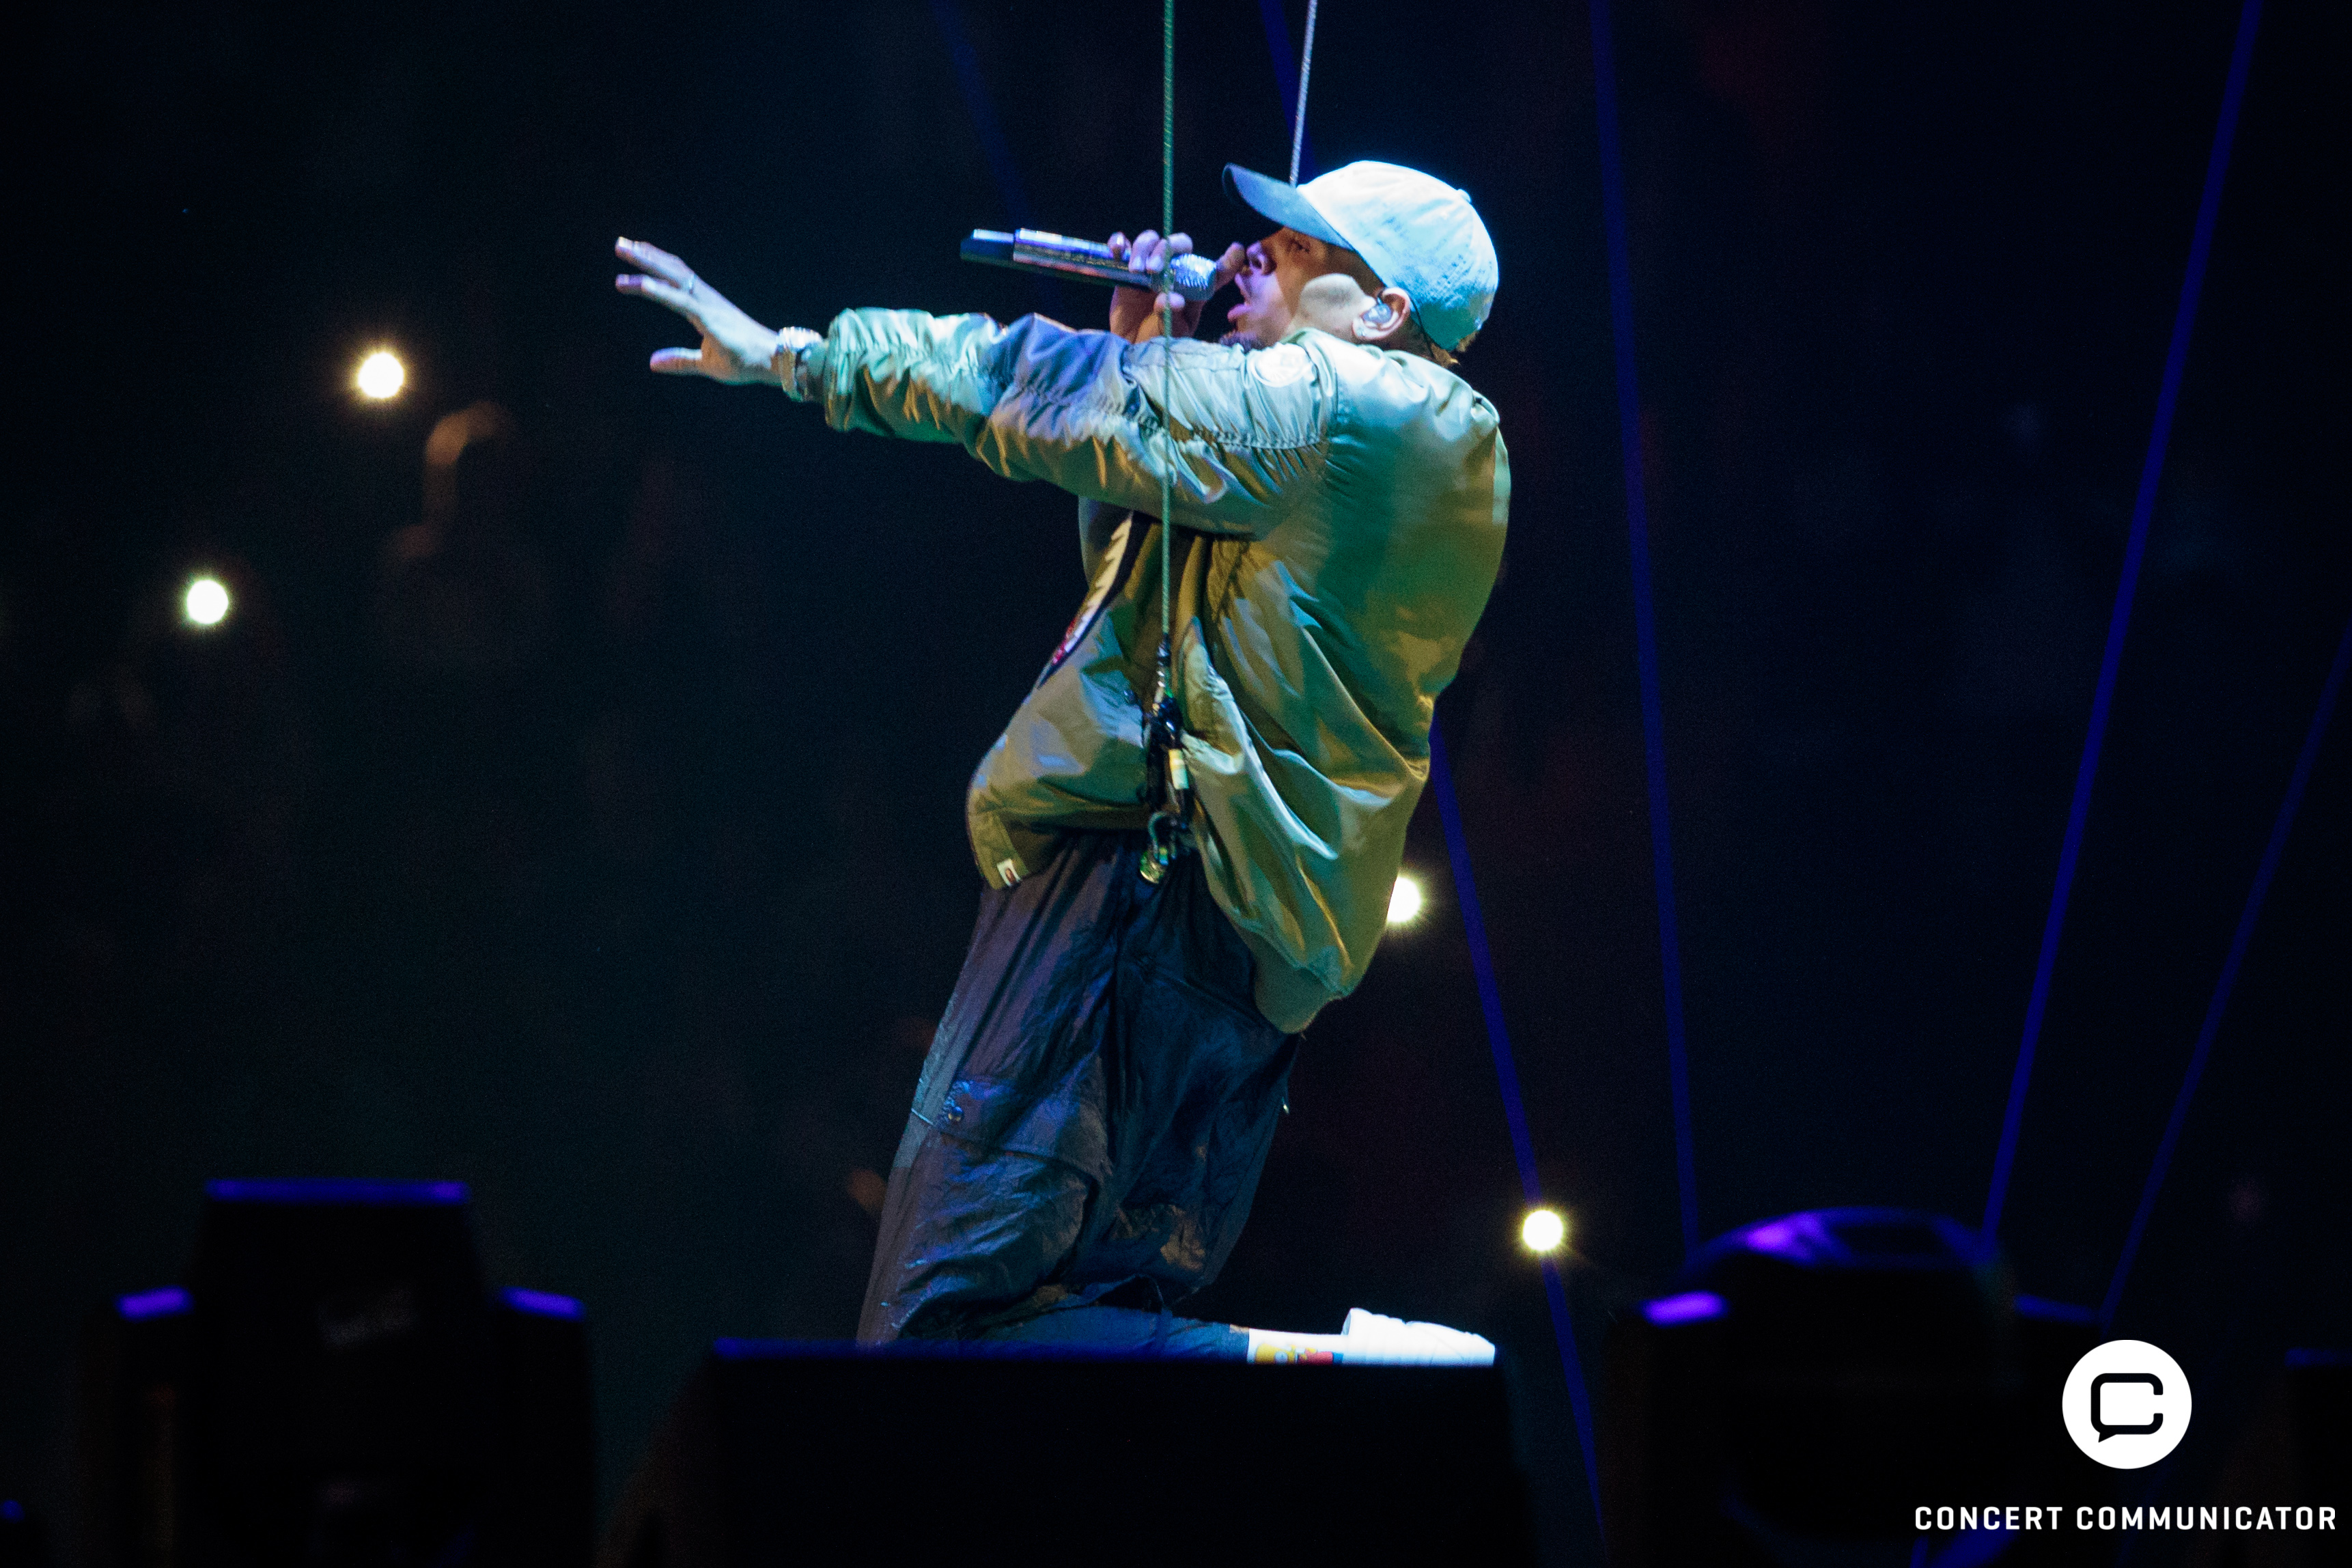 Chris Brown - The Party Tour